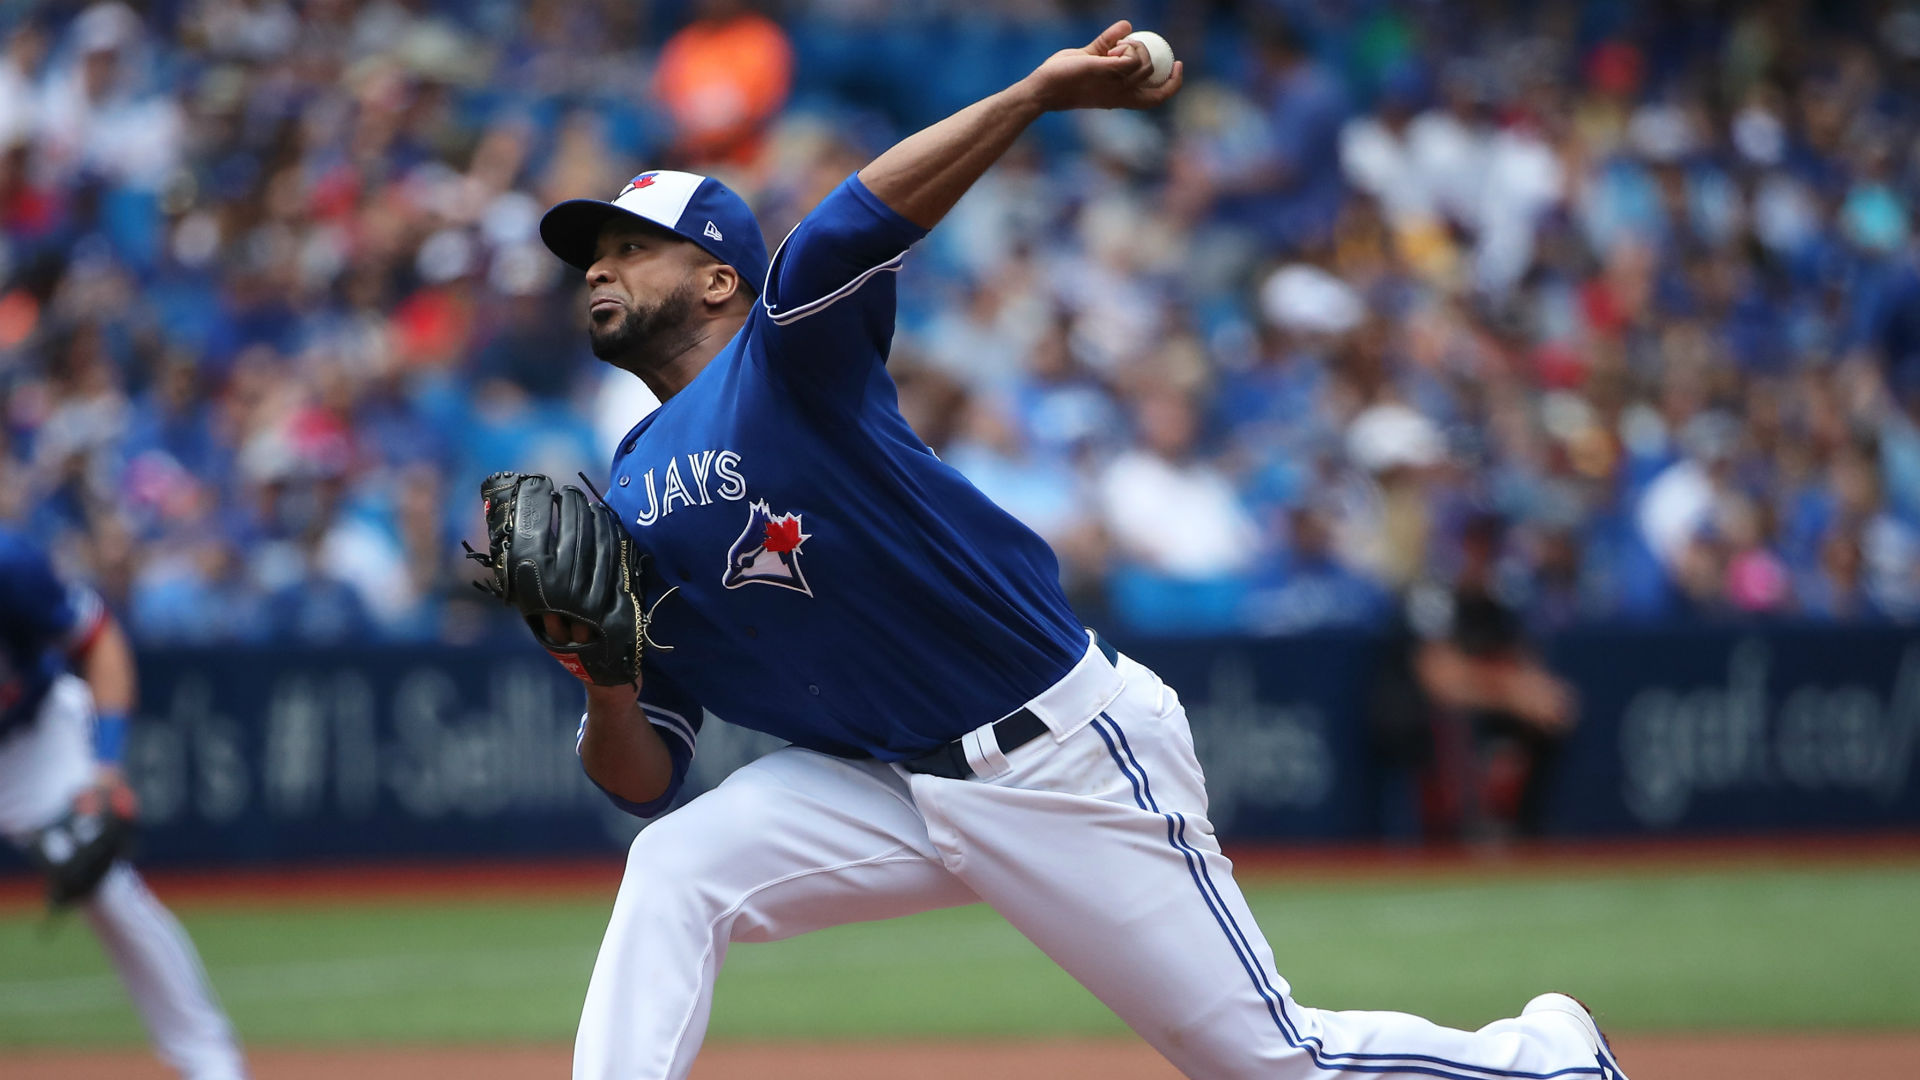 Blue Jays trade Liriano to Astros, Smith to Indians